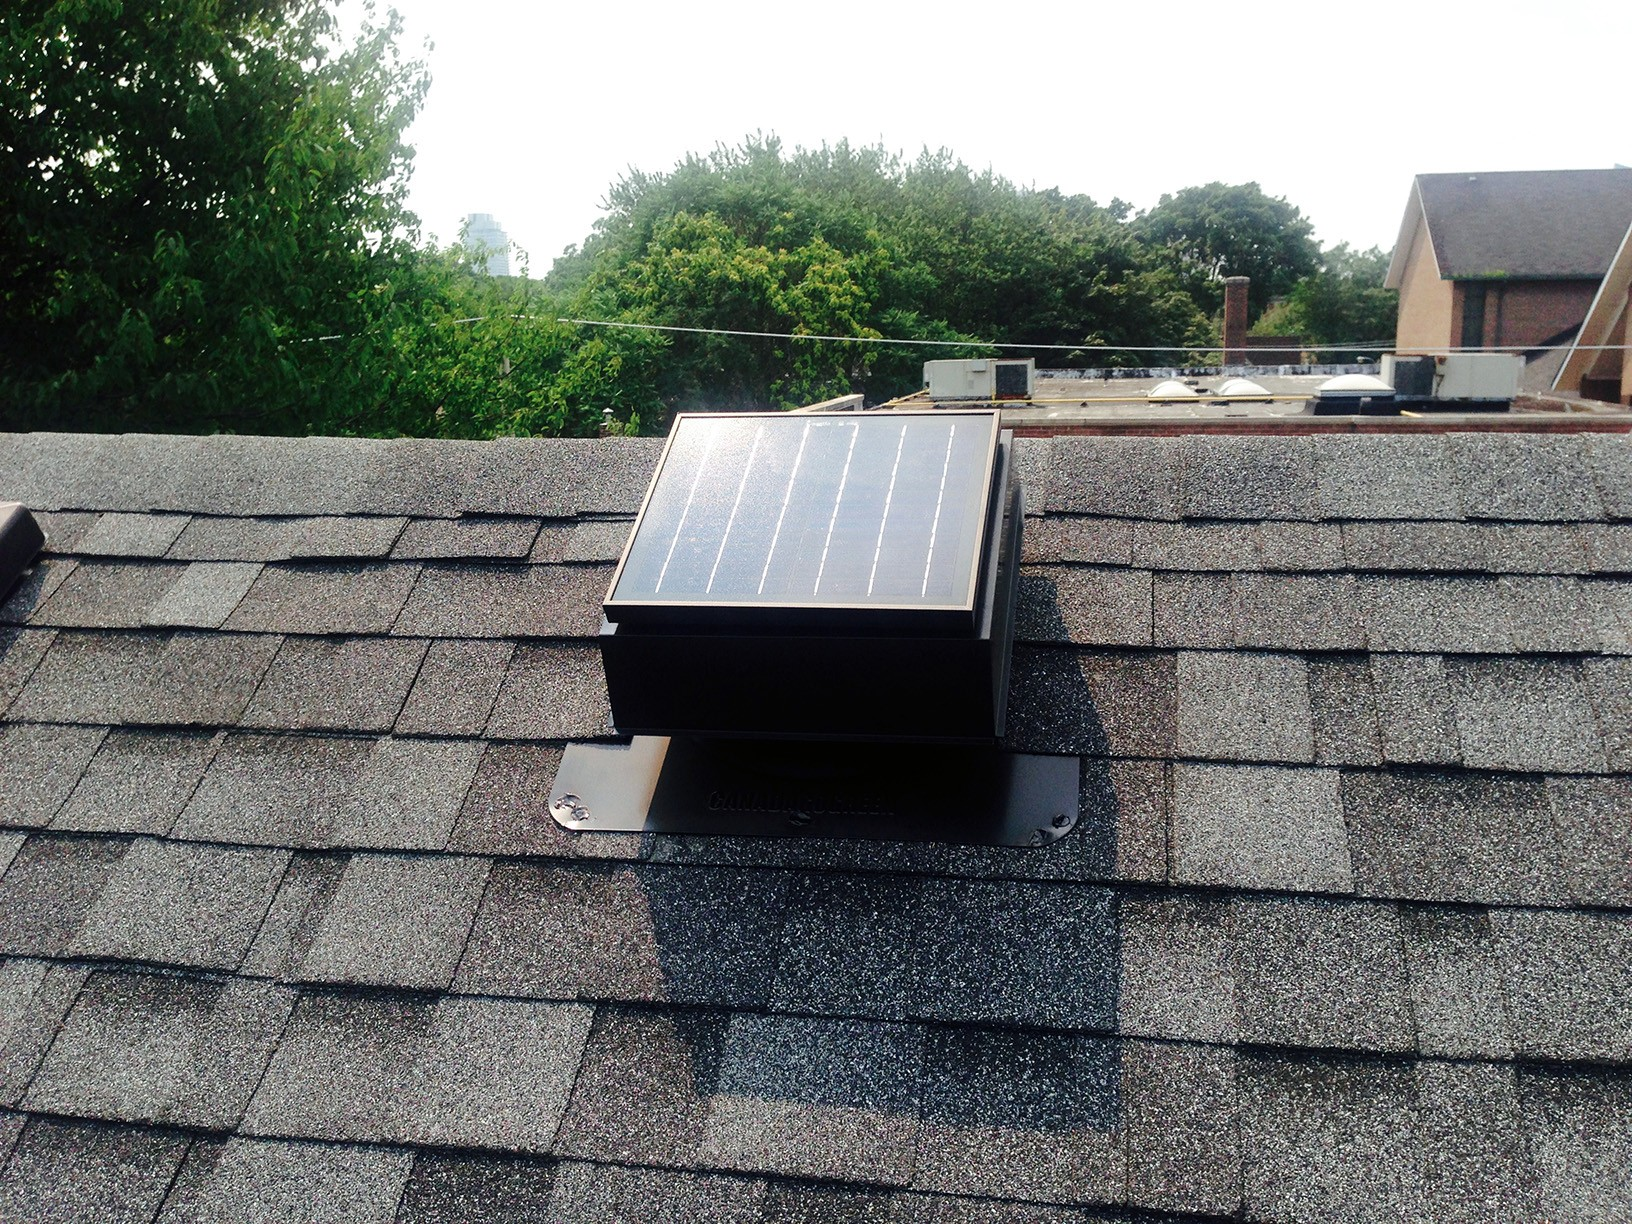 new roof - solar vent